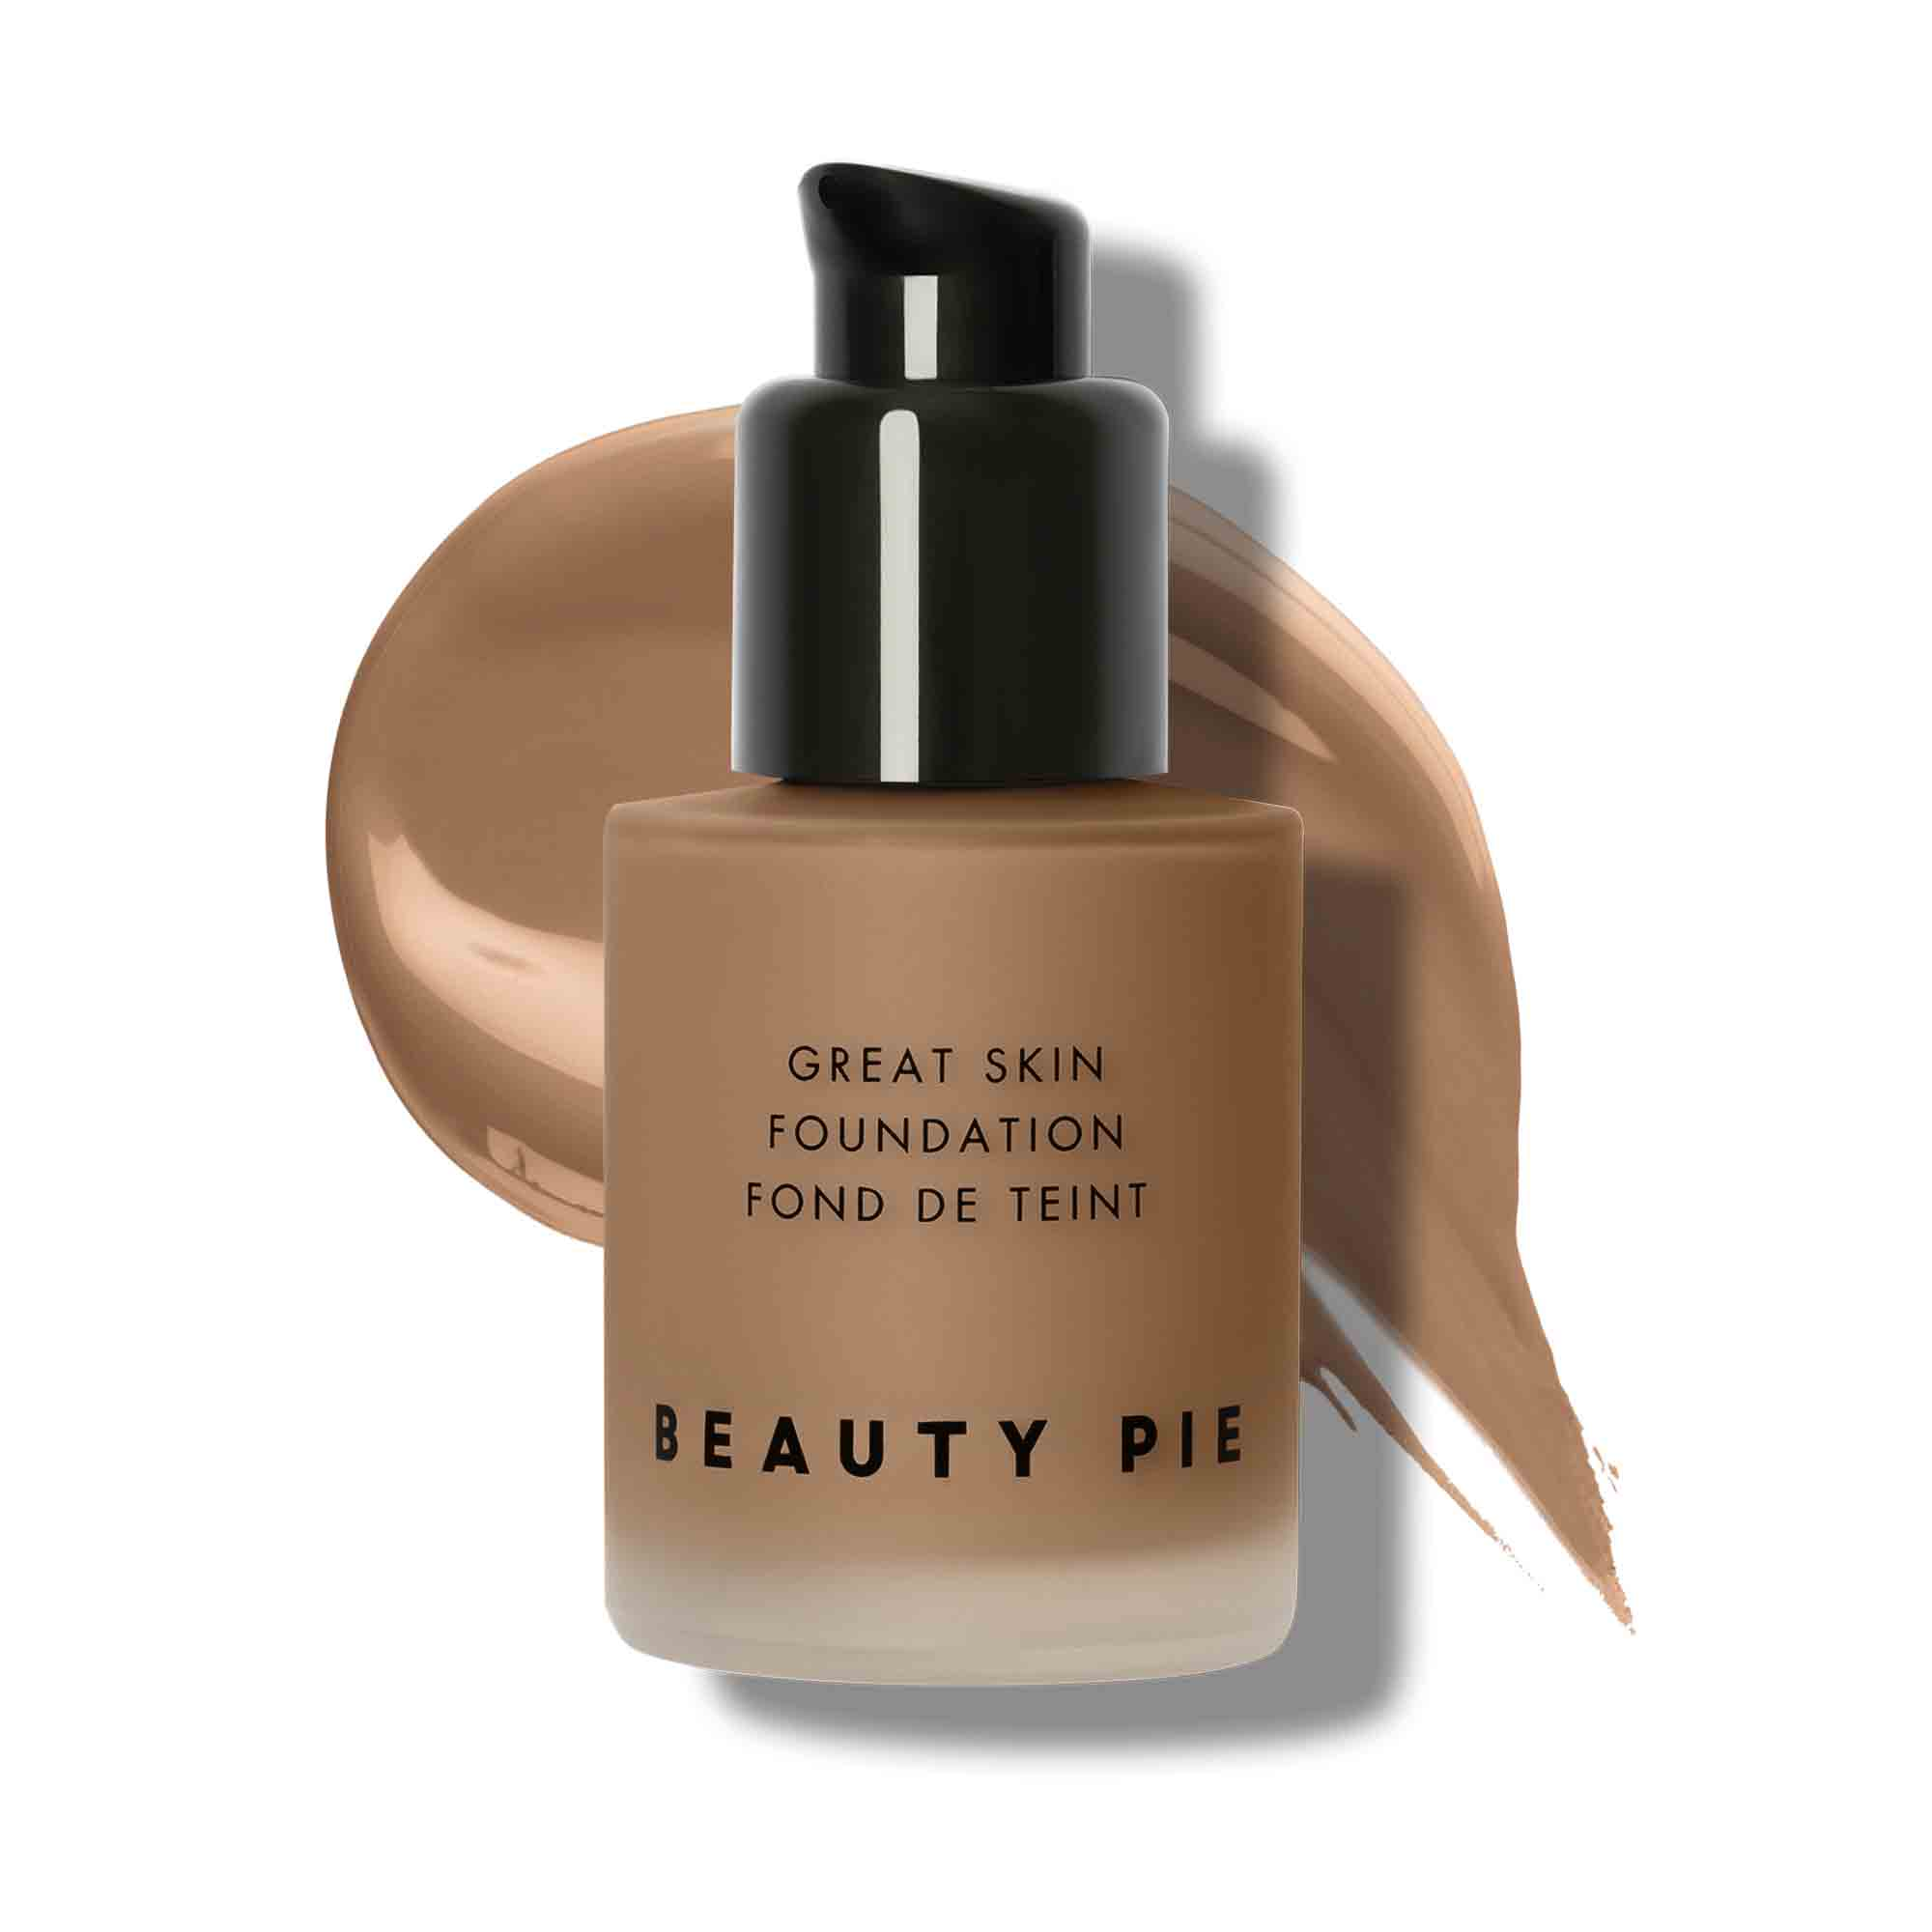 Everyday Great Skin Foundation in Milk Chocolate by Beauty Pie